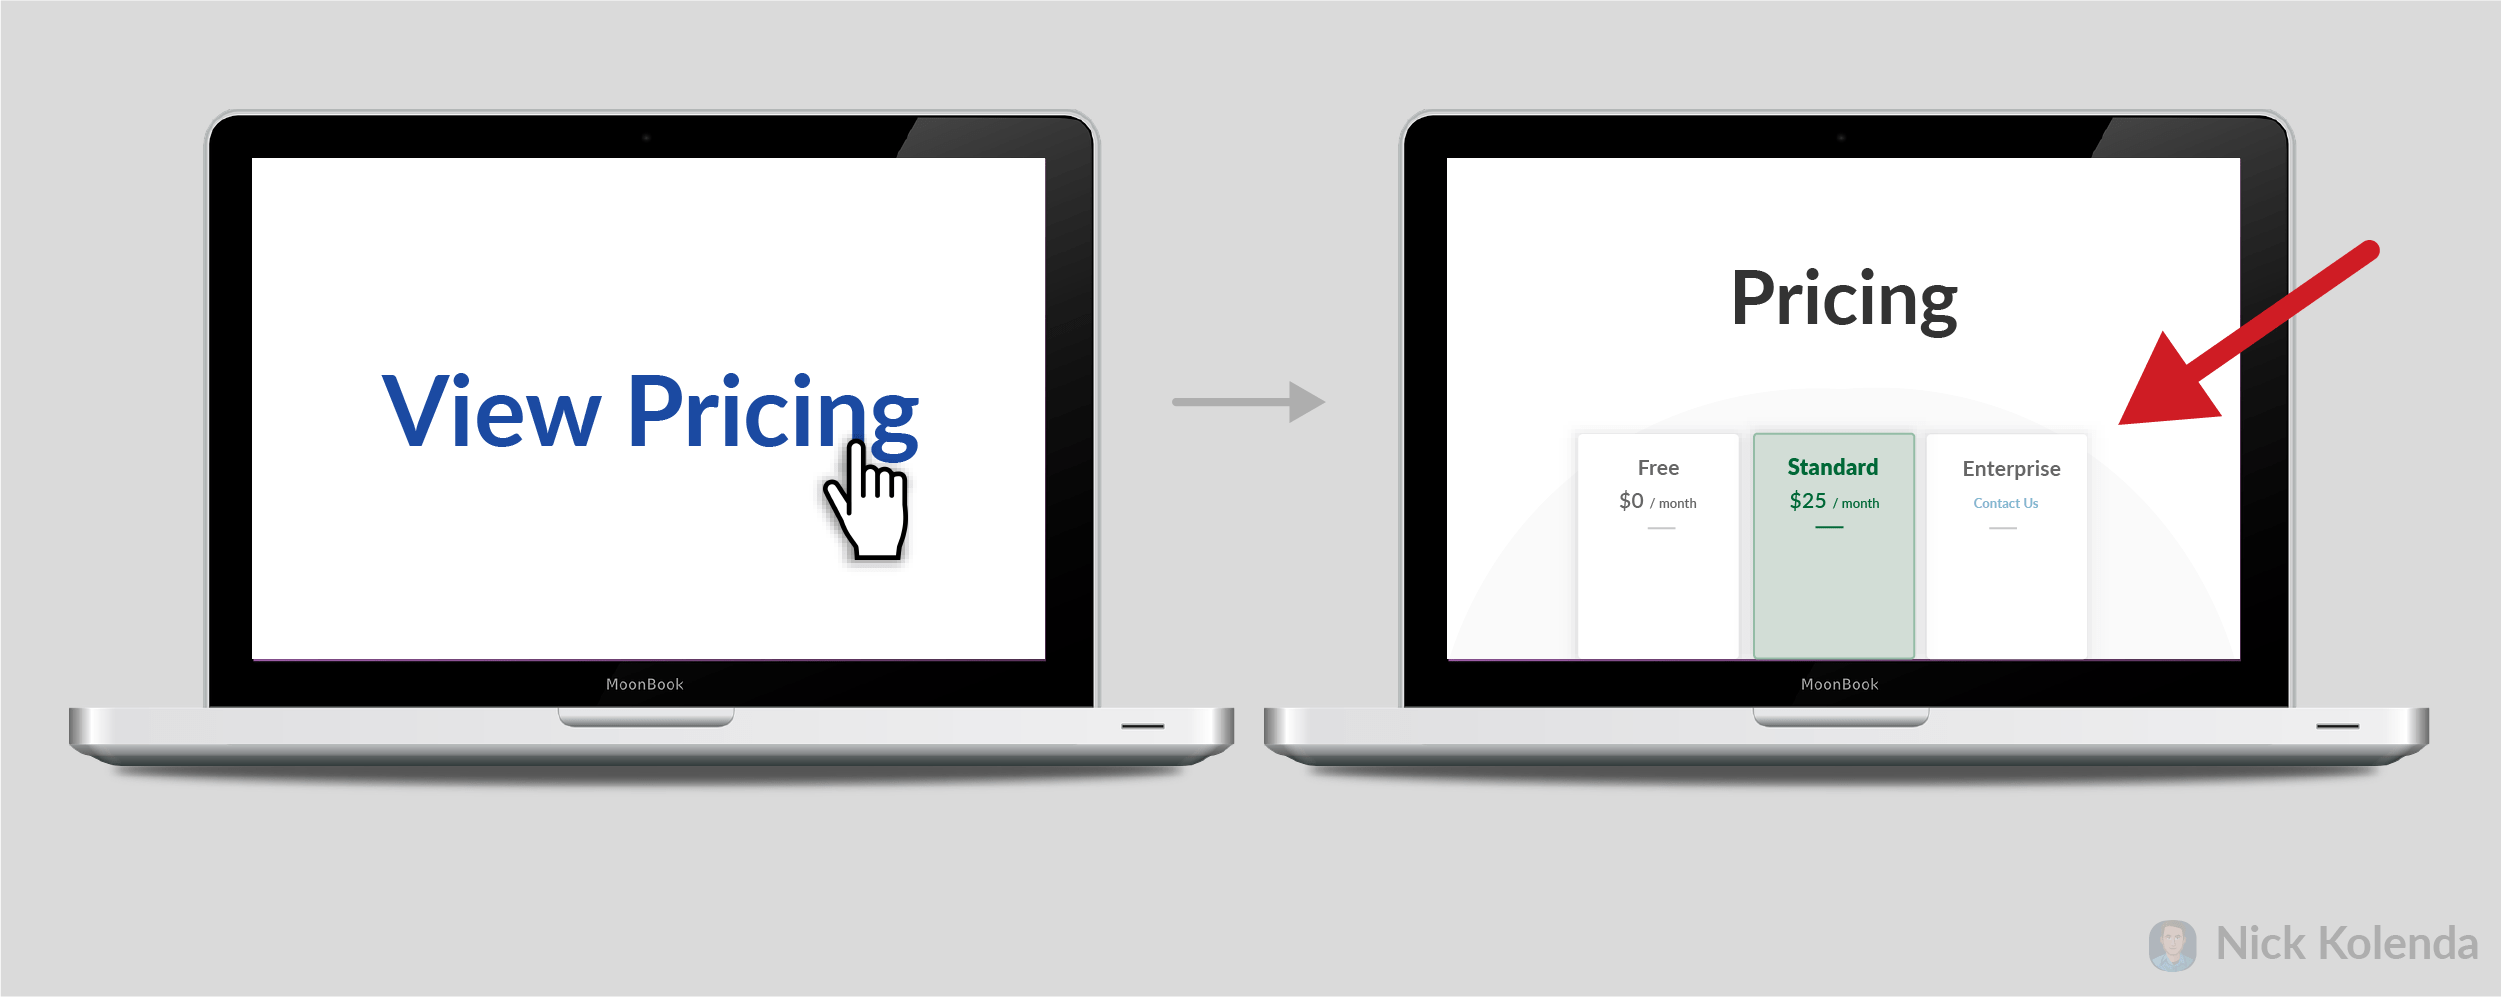 Clicking pricing and then arriving on page that shows pricing in viewport after loading